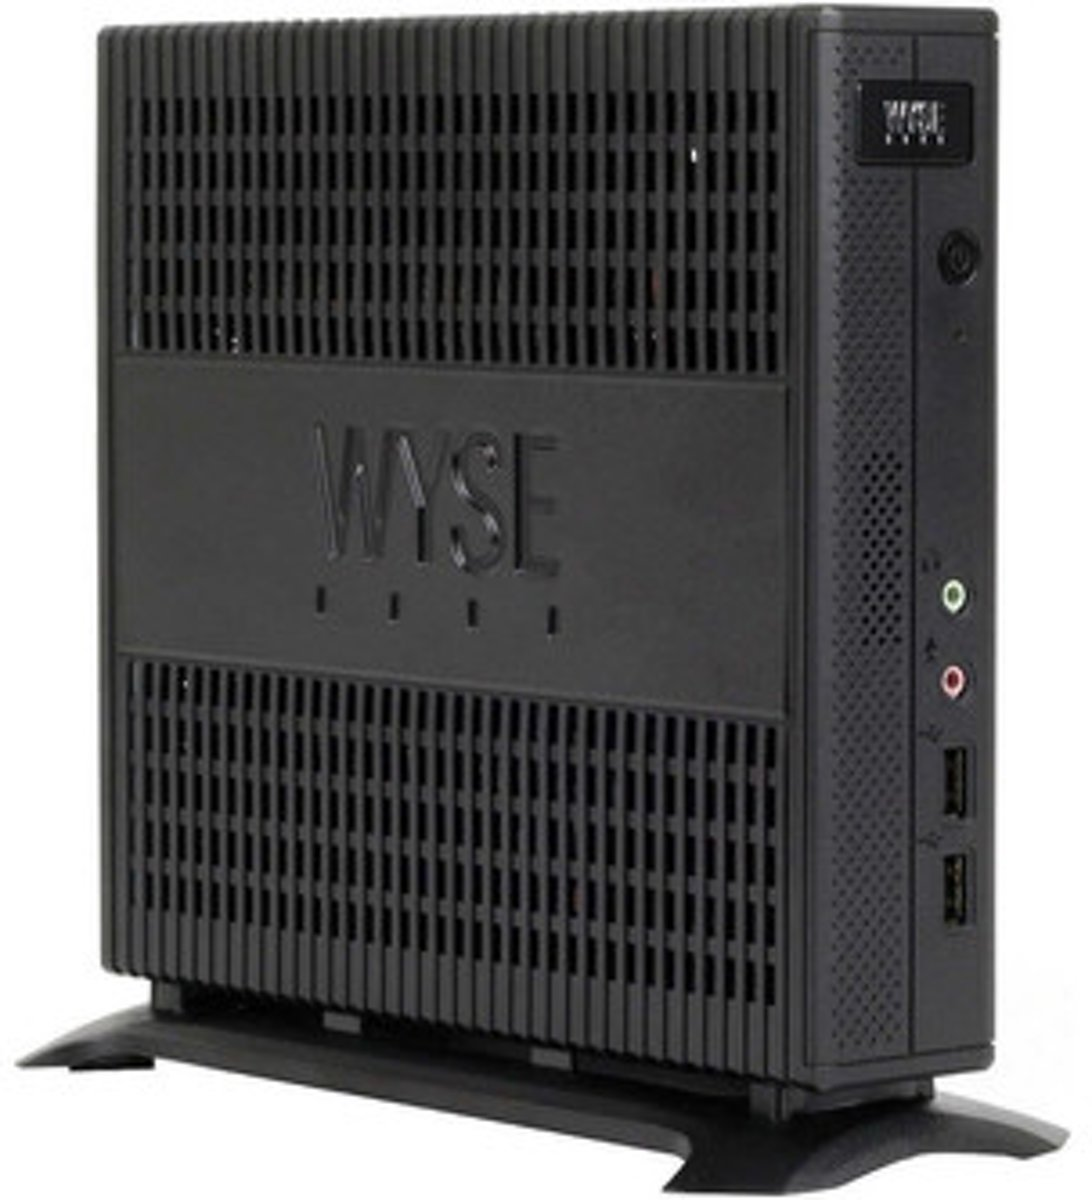 7250-Z50D - 8GFlash / 2GR - Dual Core -Wyse Suse Linux with serial and parallel ports kopen